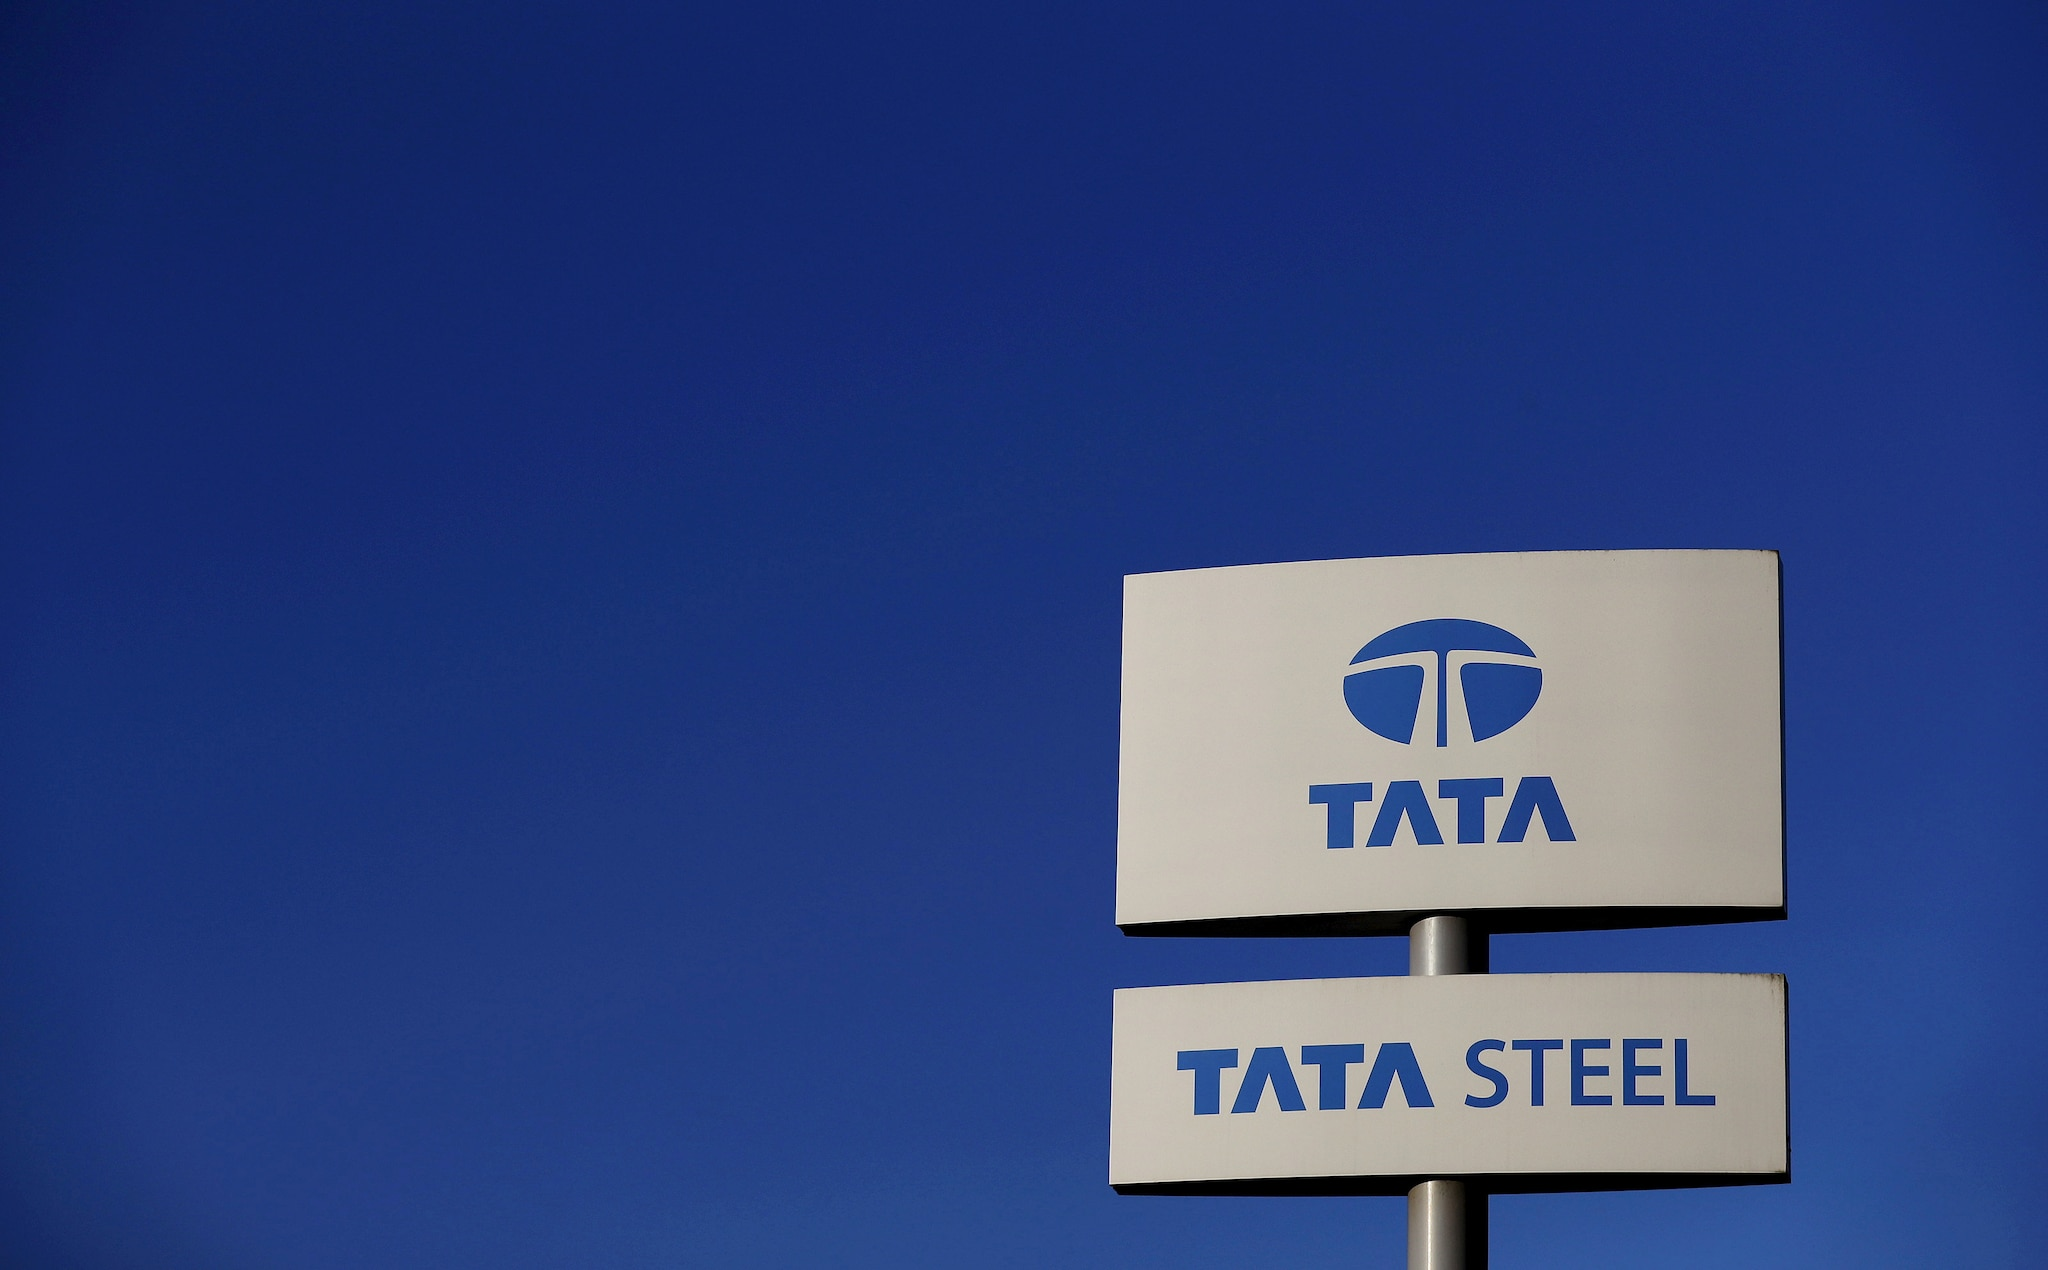 Tata Steel BSL said on Wednesday its board has approved a proposal to raise up to Rs 24,000 crore through an issue of preference shares to Tata Steel on private placement basis. (Picture credits: Reuters/Caption credits: PTI)